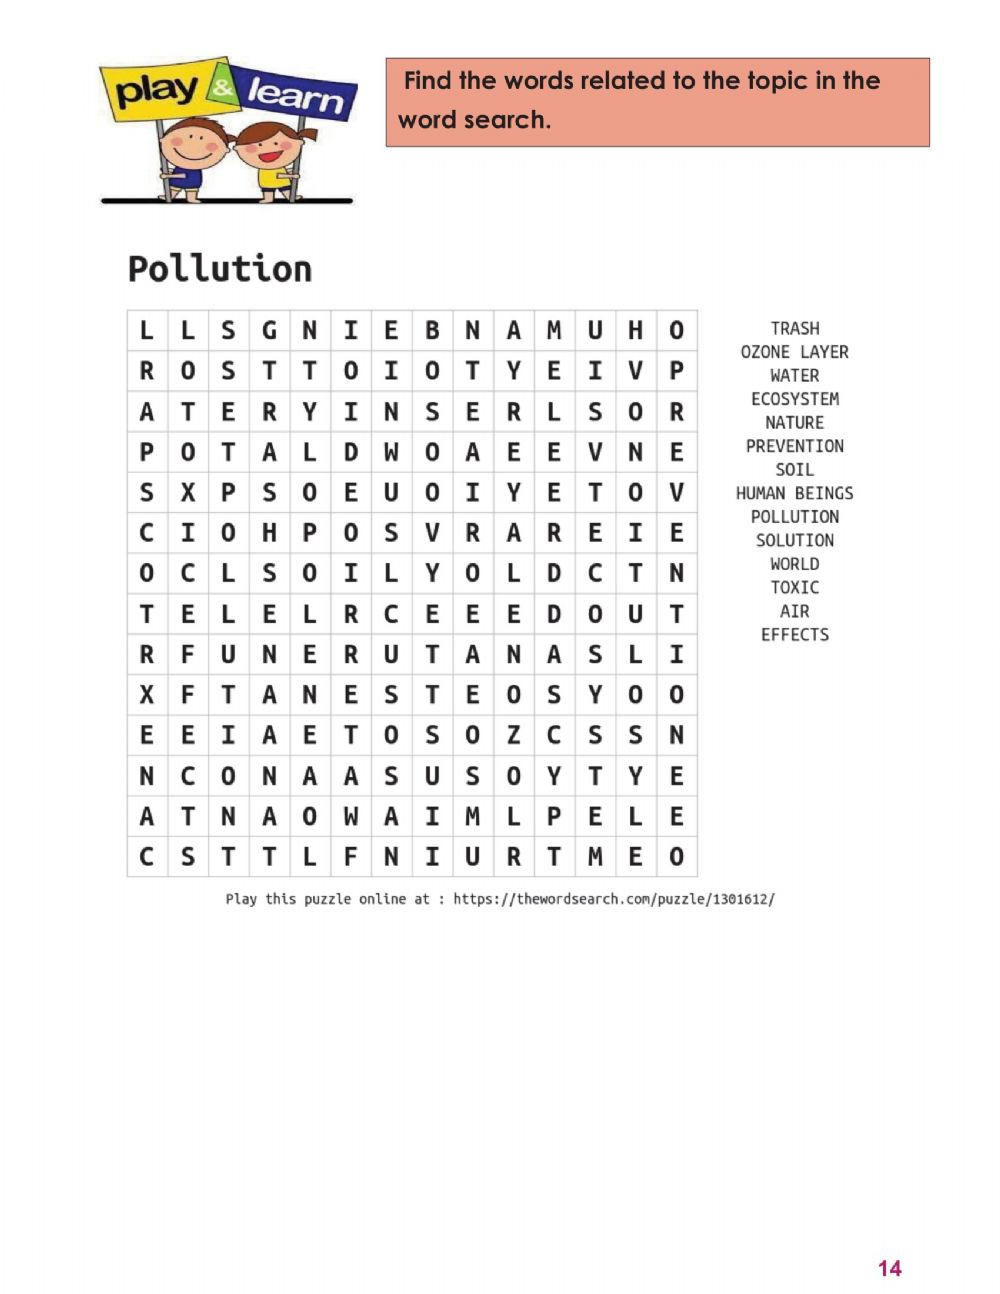 hight resolution of 2T-8th-Pollution-Word search 3 worksheet